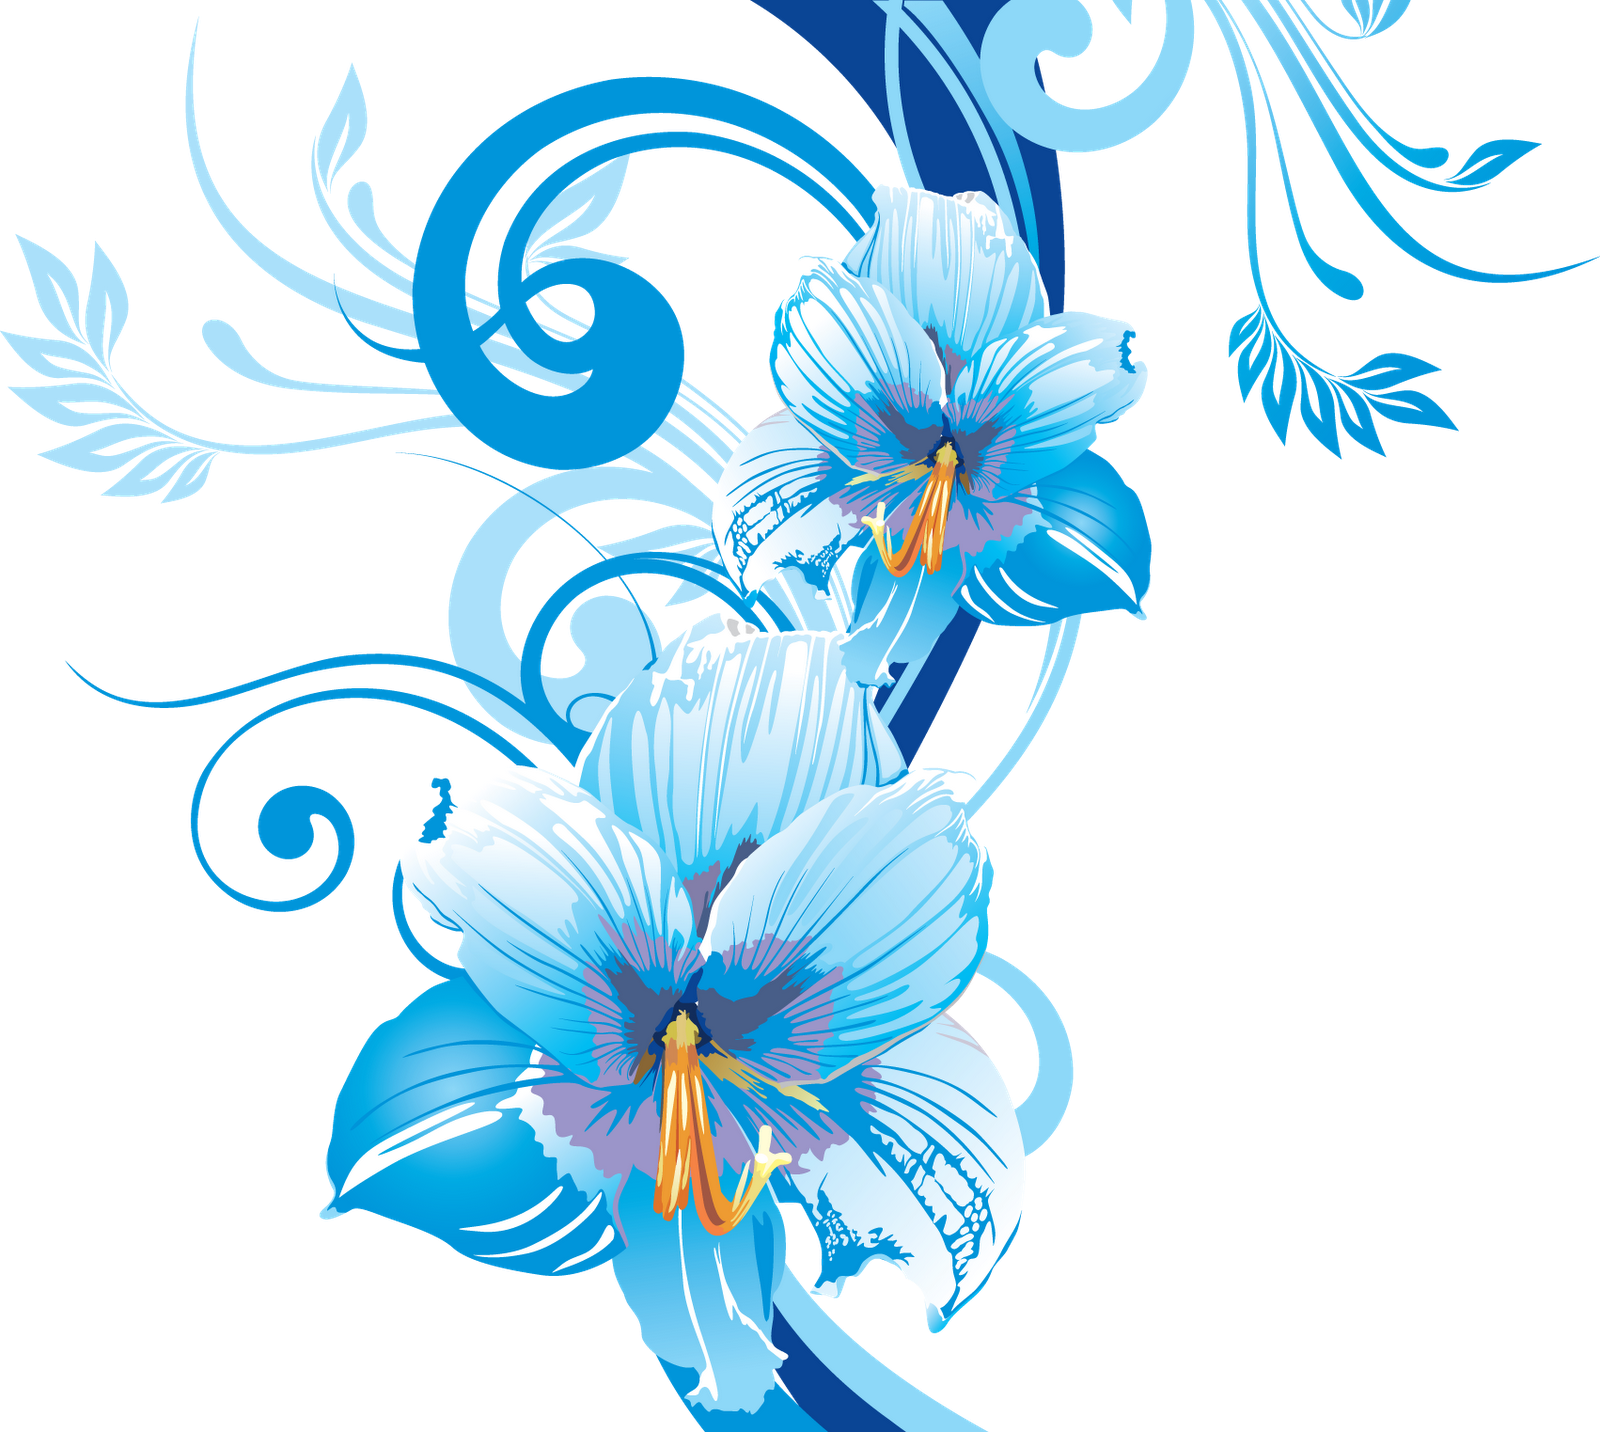 Flowers background Vector Image 1799191 StockUnlimited - Flowers Vectors PNG